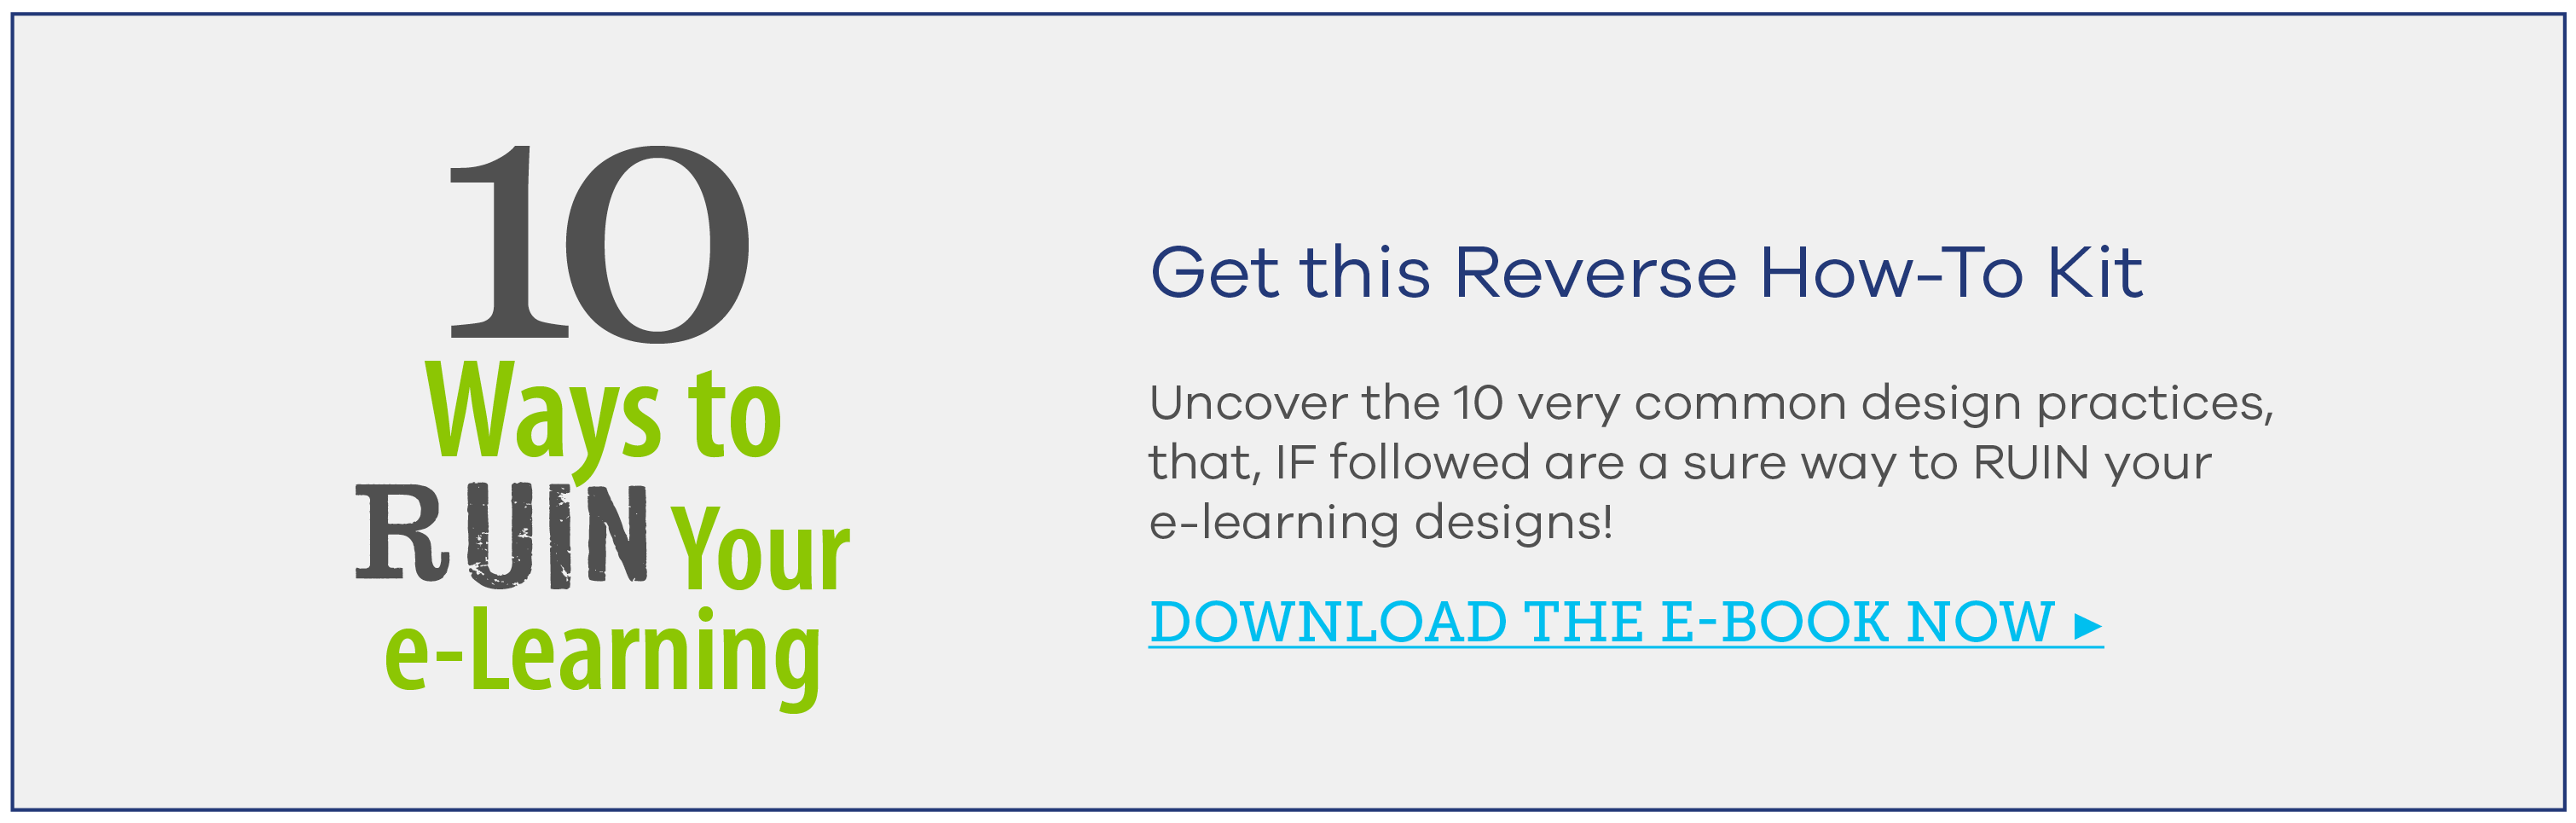 10 Ways to Ruin Your e\u002DLearning Kit \u002D Allen Interactions \u002D Custom e\u002DLearning